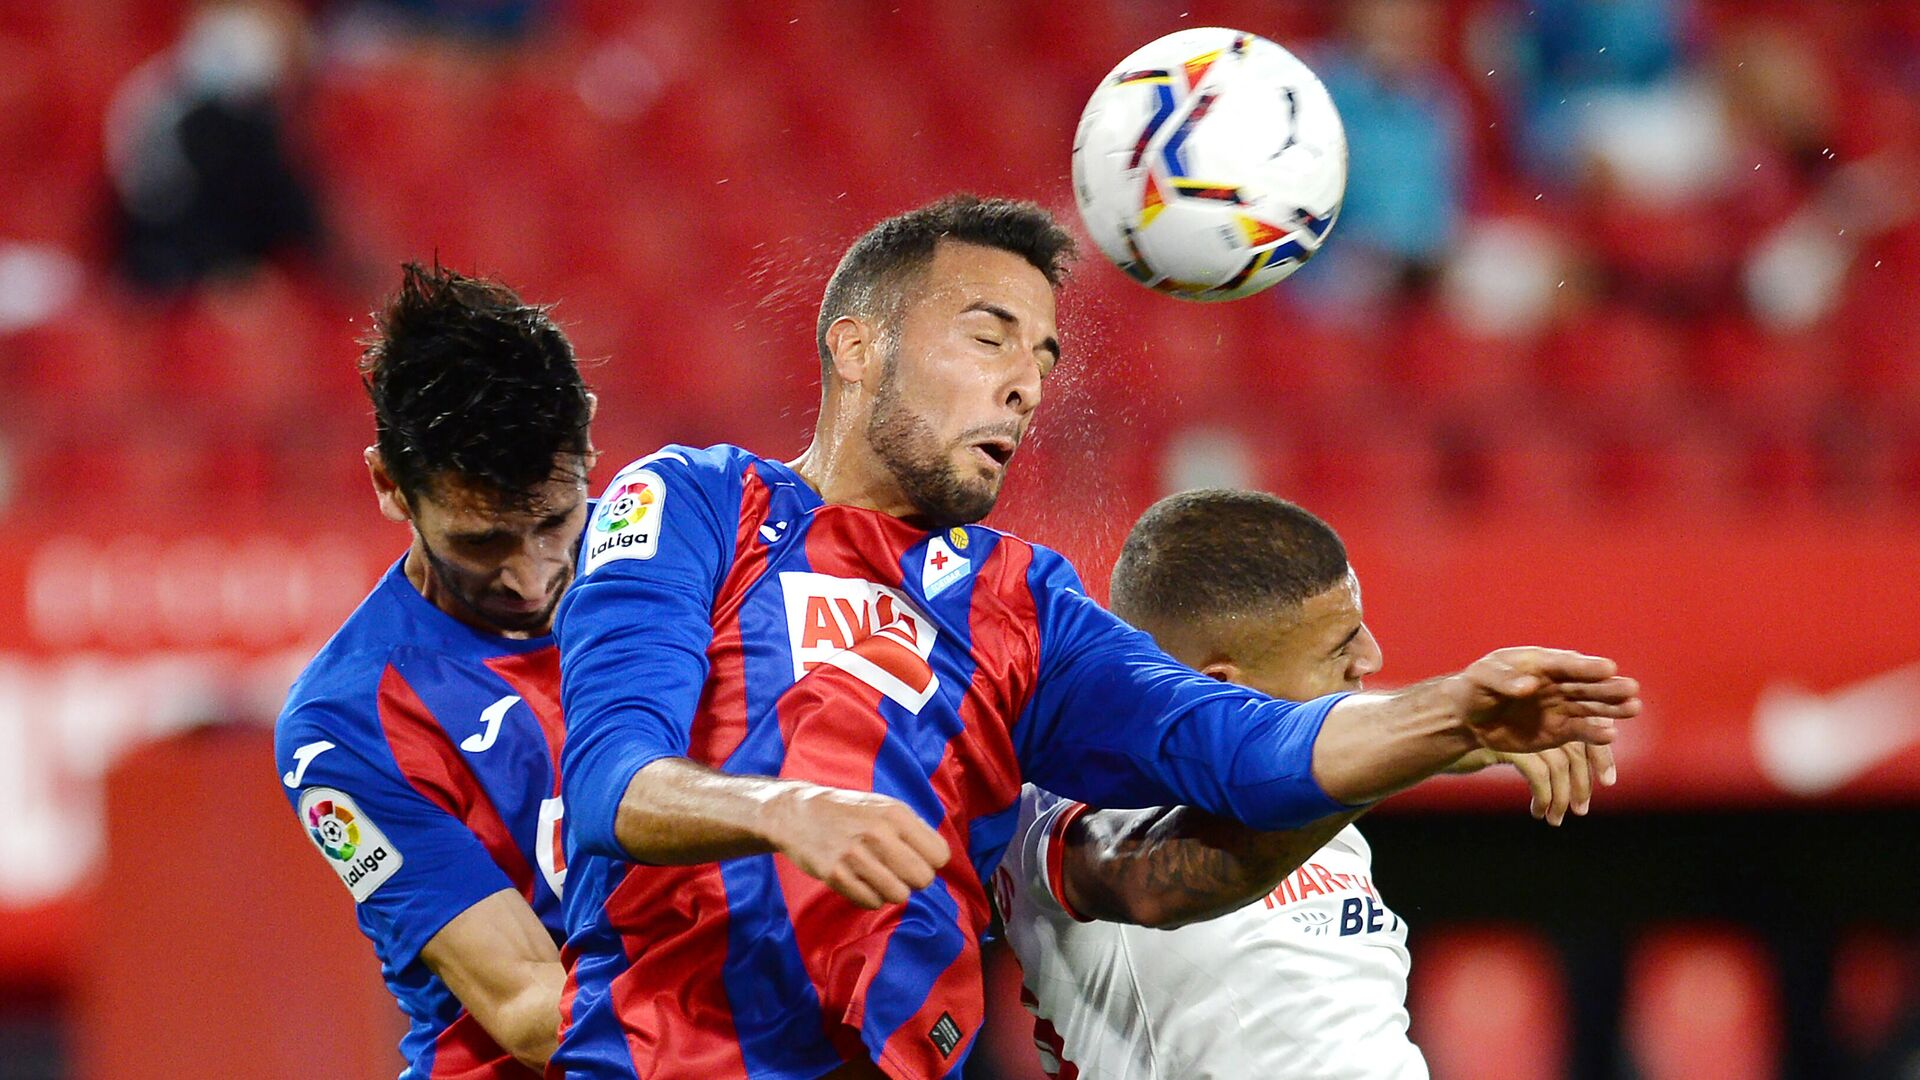 Eibar's Argentinian defender Esteban Burgos (C) jumps for the ball with Eibar's Portuguese defender Paulo Oliveira (L) and Sevilla's Brazilian defender Diego Carlos during the Spanish League football match between Sevilla and Eibar at the Sanchez Pizjuan stadium in Sevilla on October 24, 2020. (Photo by CRISTINA QUICLER / AFP) - РИА Новости, 1920, 24.10.2020